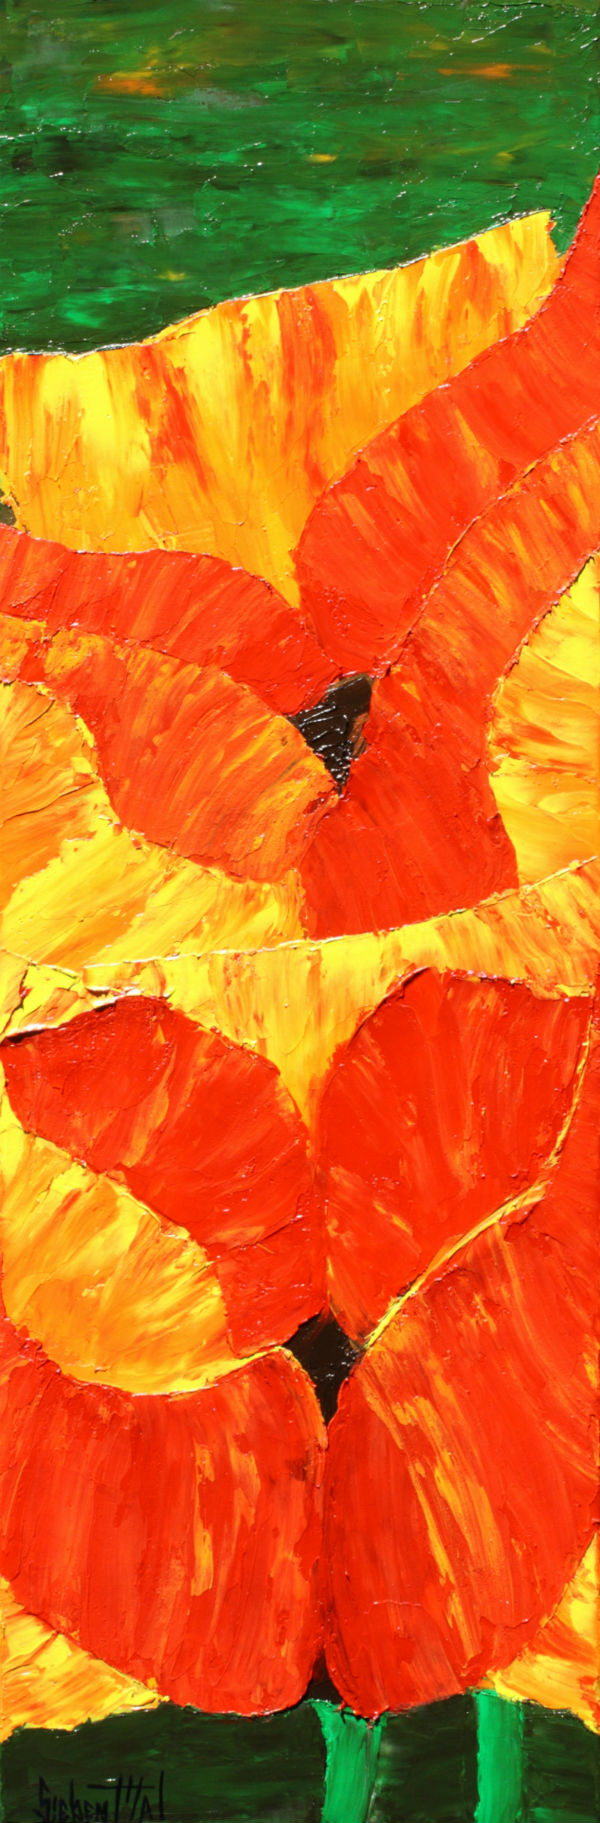 Poppy - Oil - Palette Knife by Eric Siebenthal